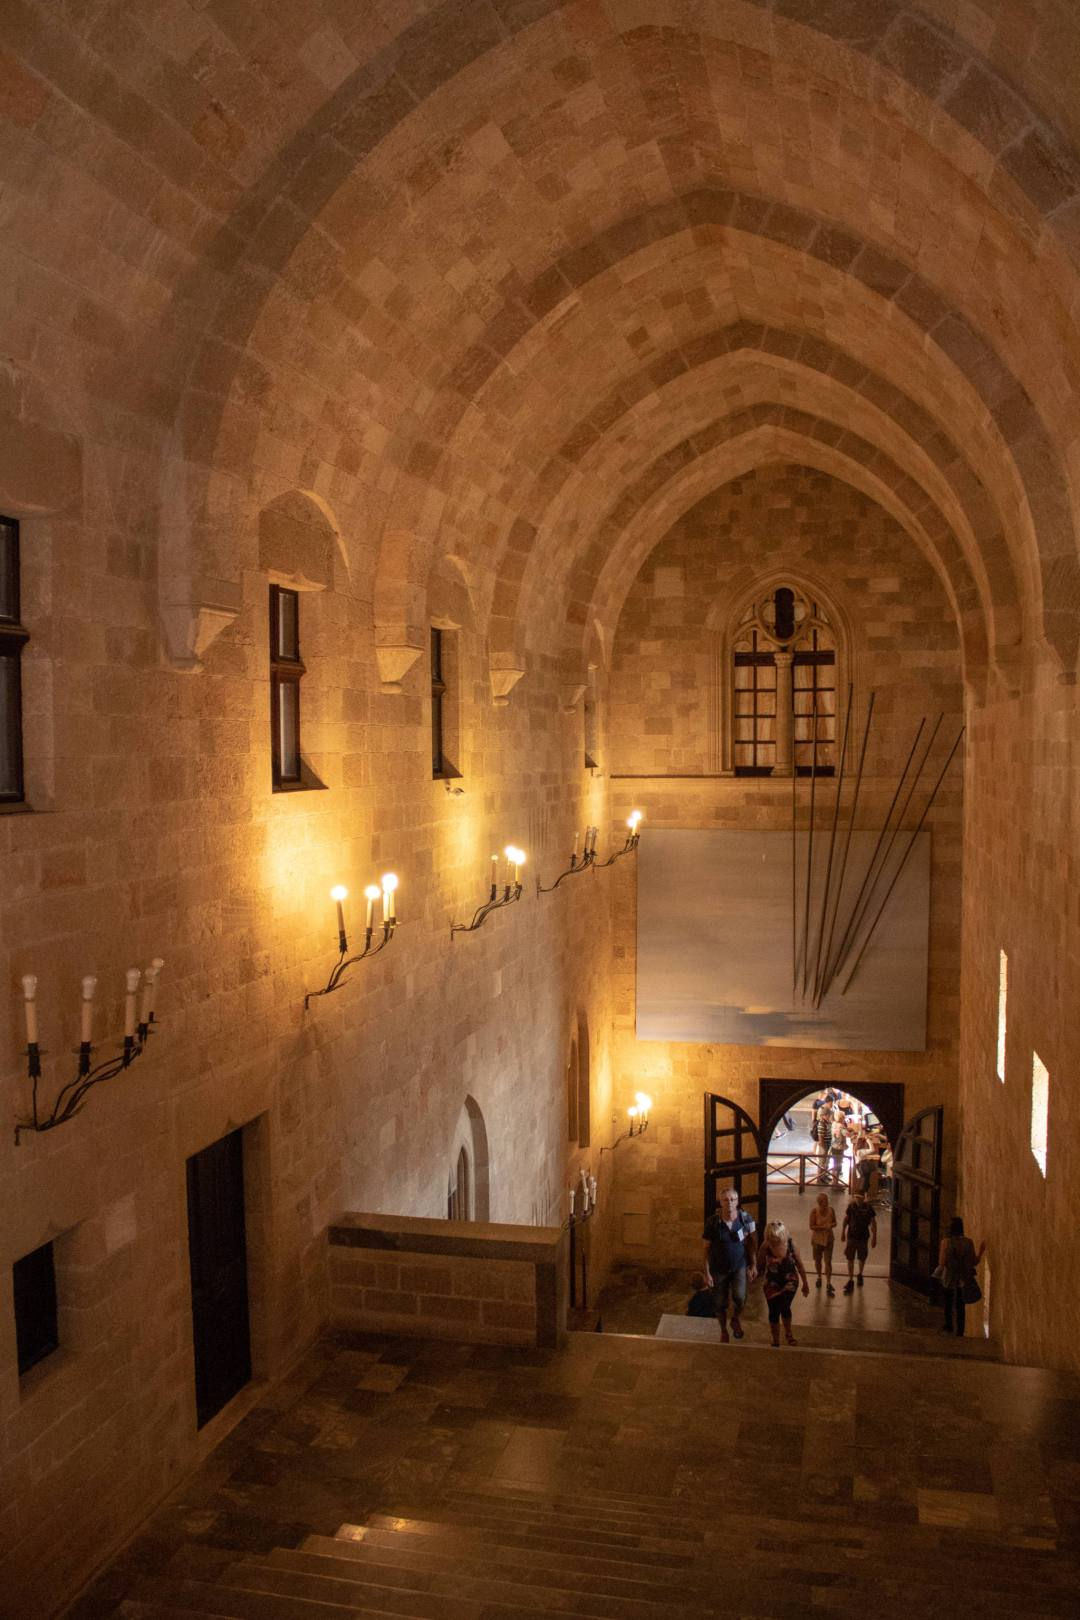 Inside the Rhodes Grand Master's Palace